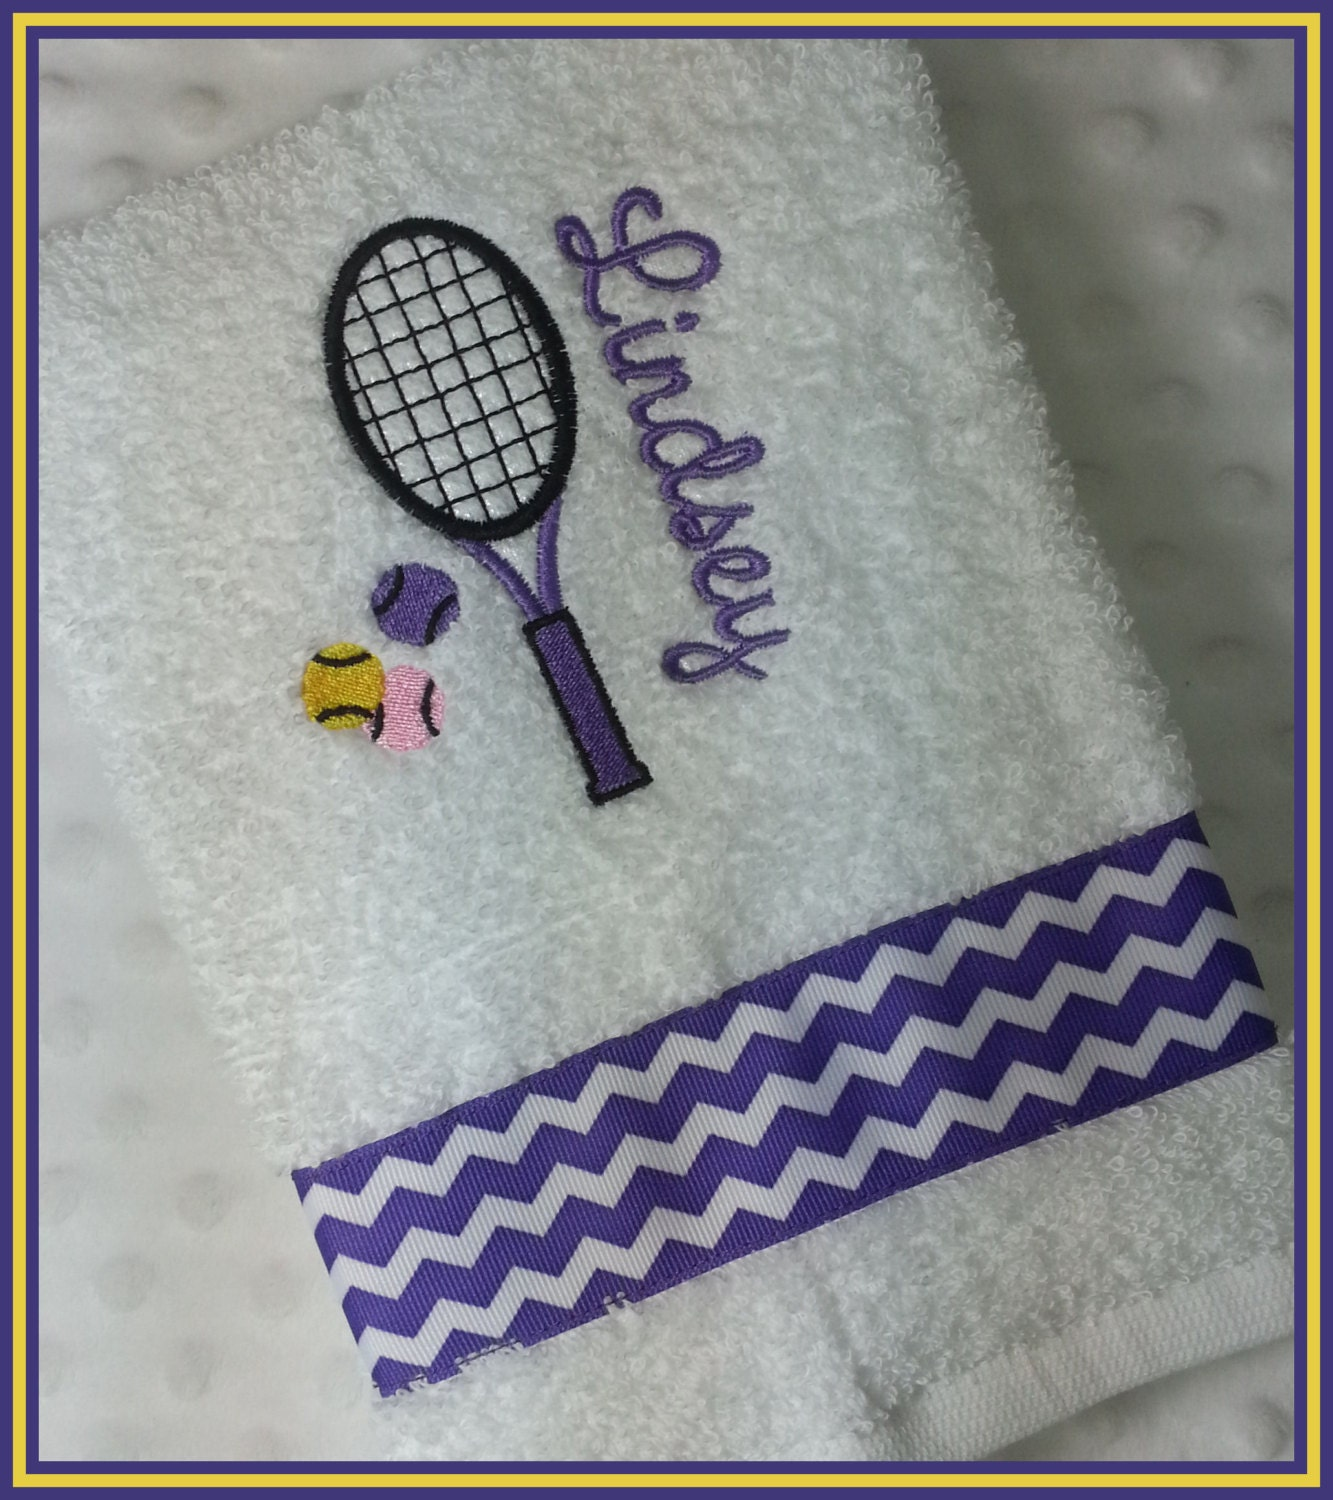 Personalized Tennis Racket Sweat Towel With Racket And Balls